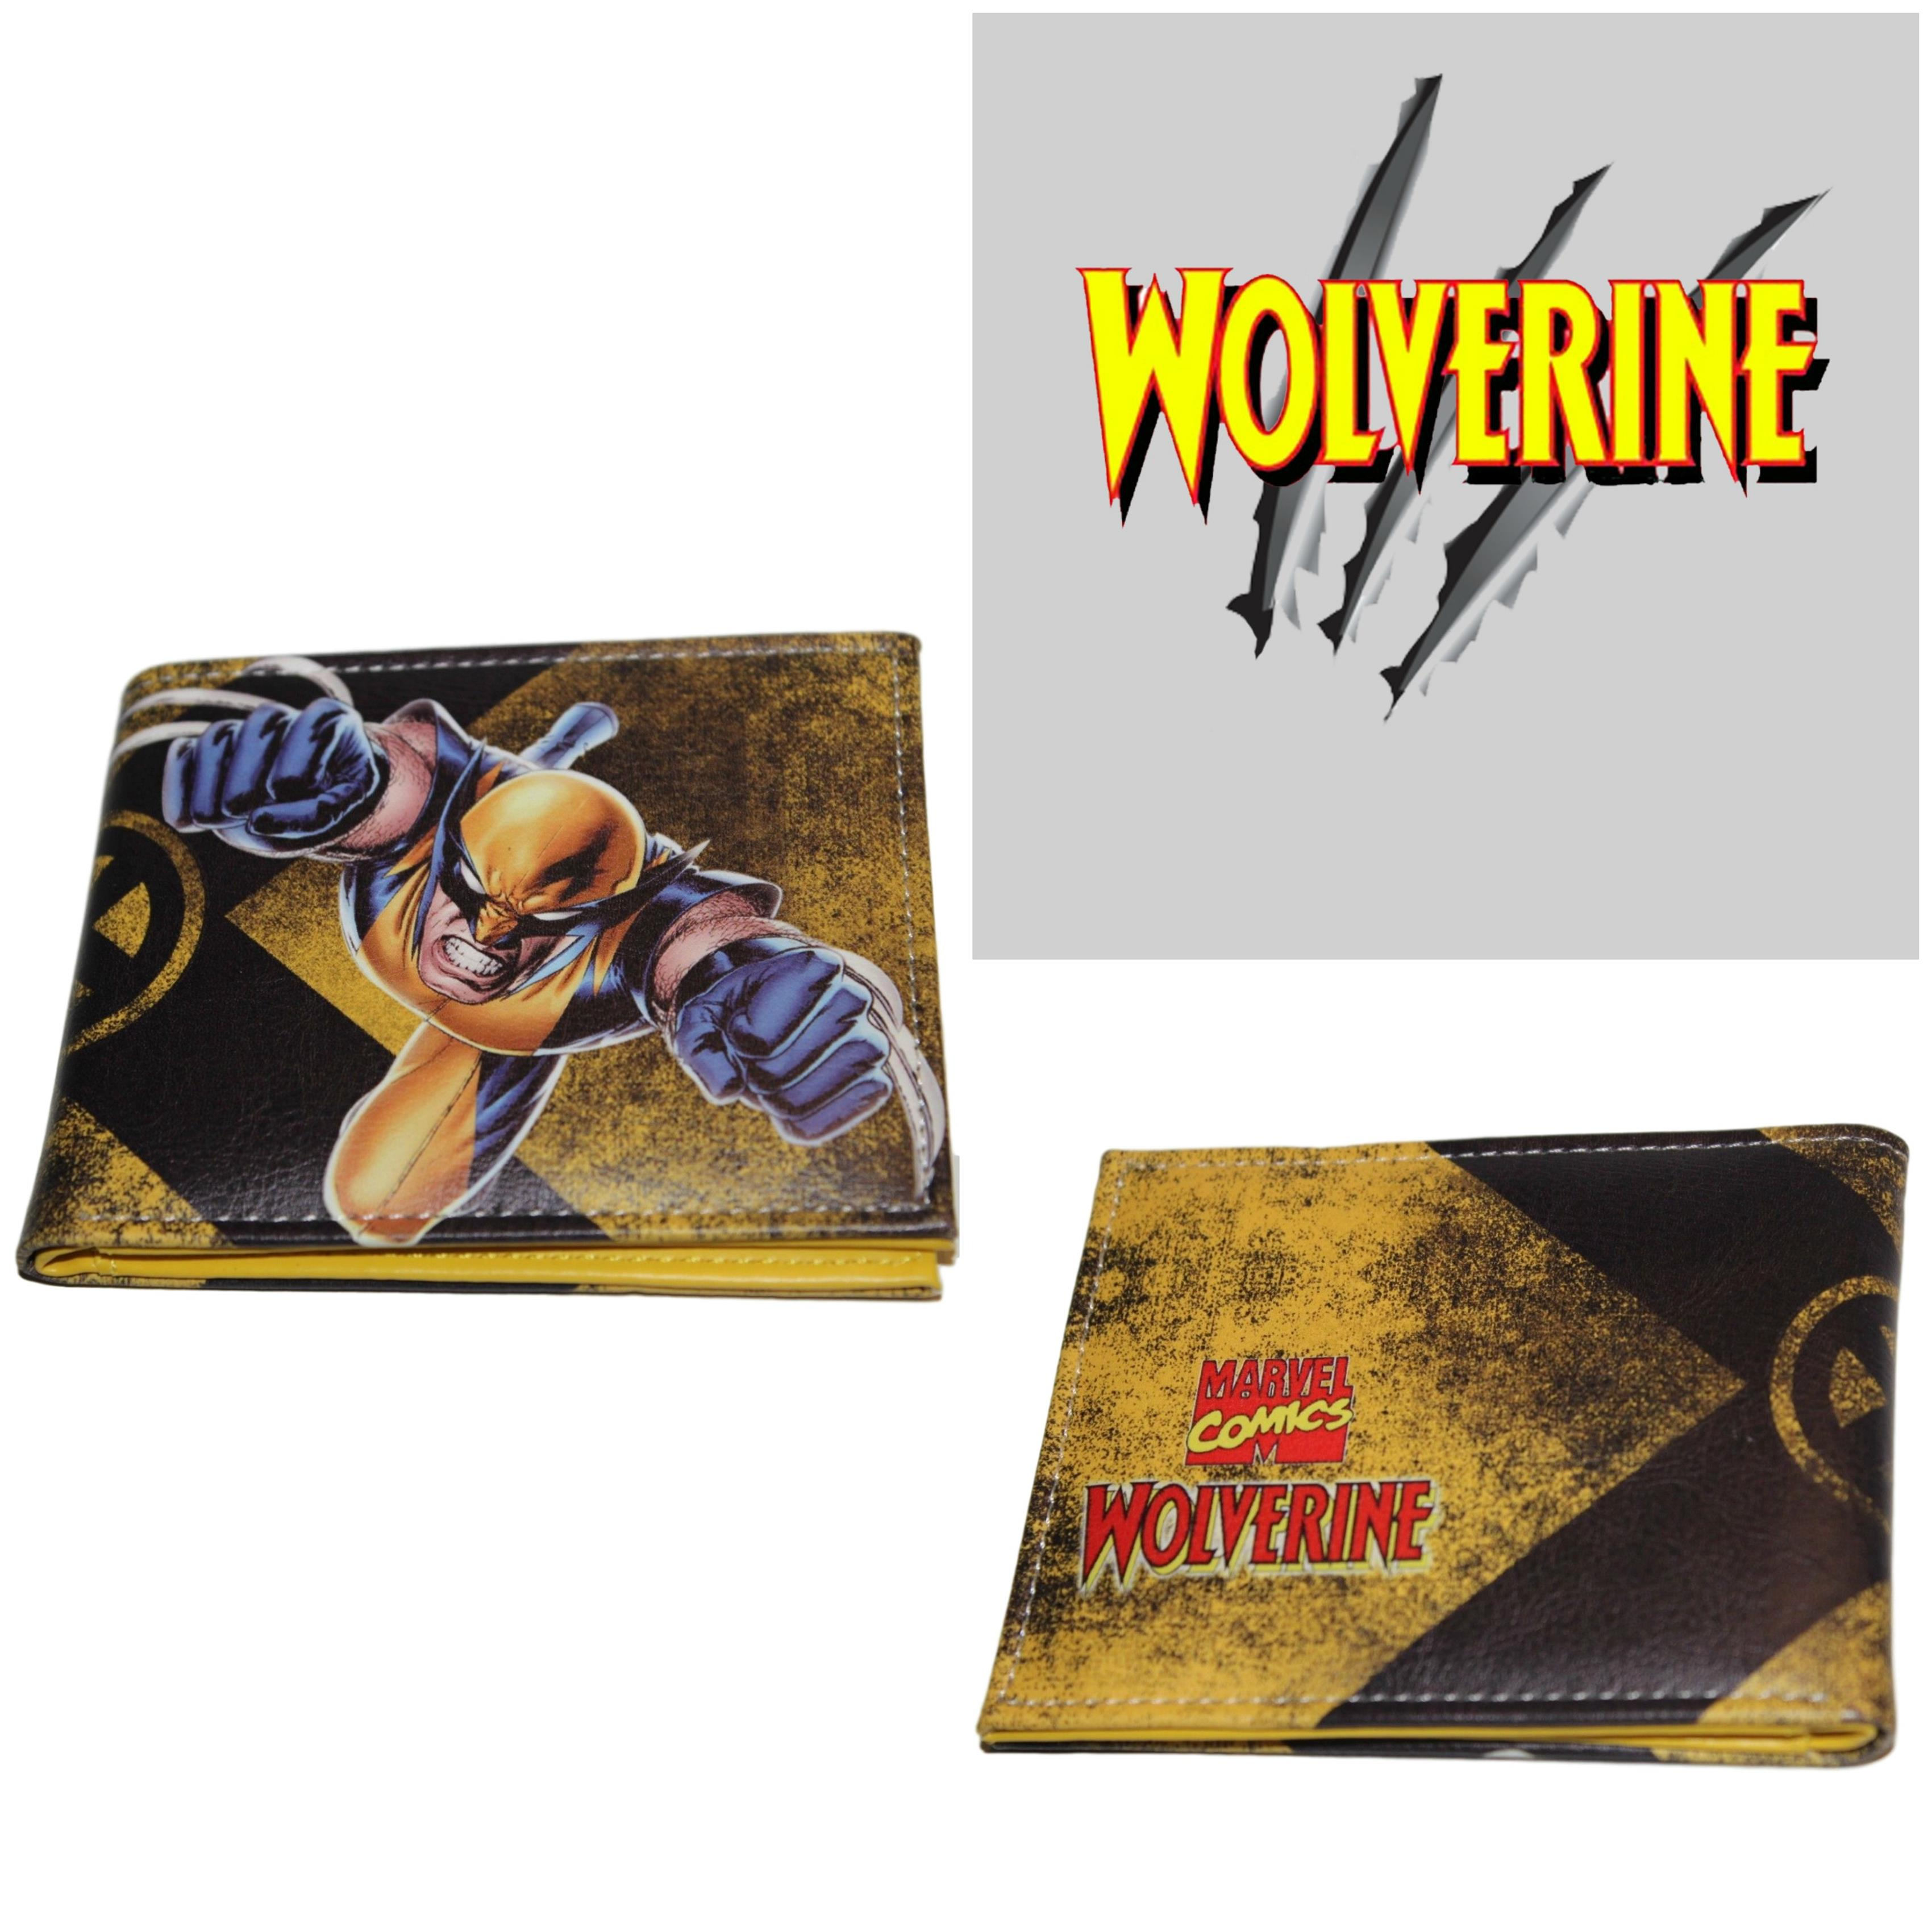 Superheroes Marvel Comics X-Men Wolverine X Logo Bi-fold Mens Boys Wallet with Gift Box